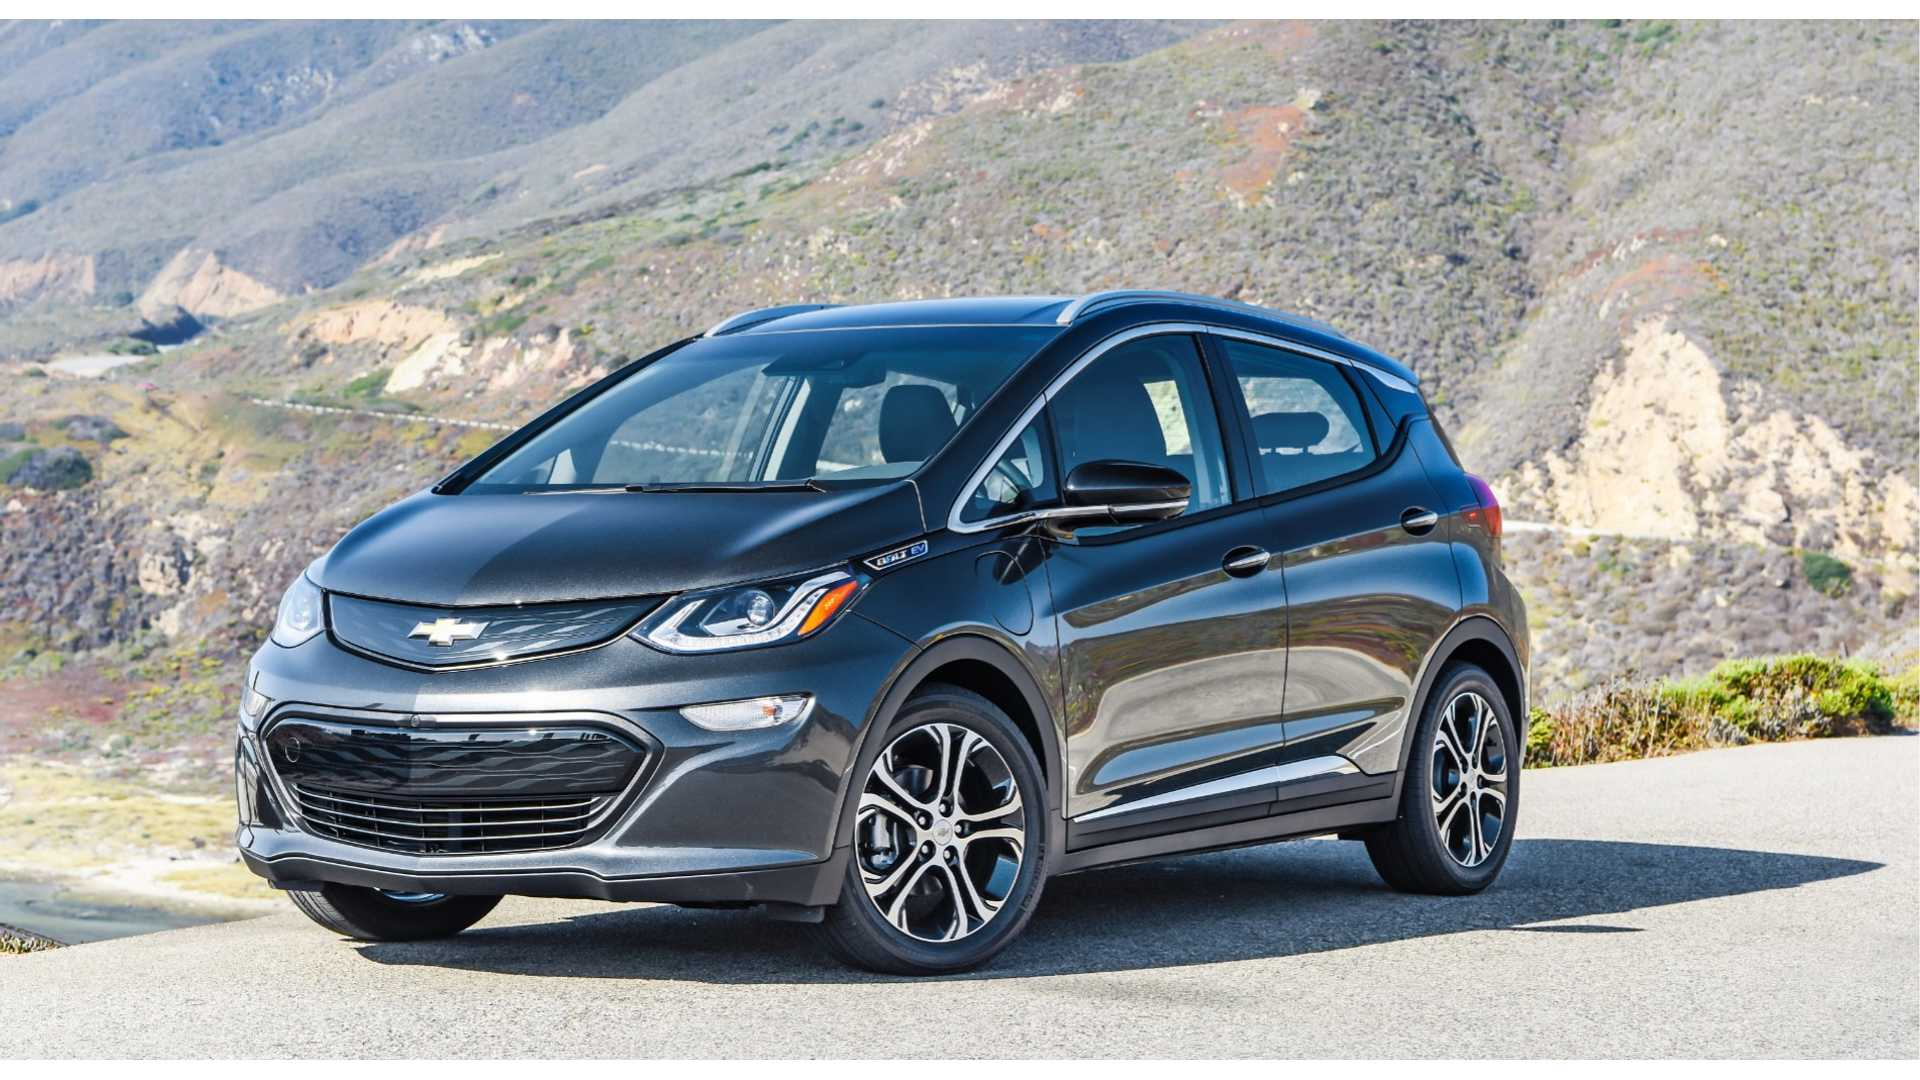 Next Gen Chevy Bolt Coming In 2025